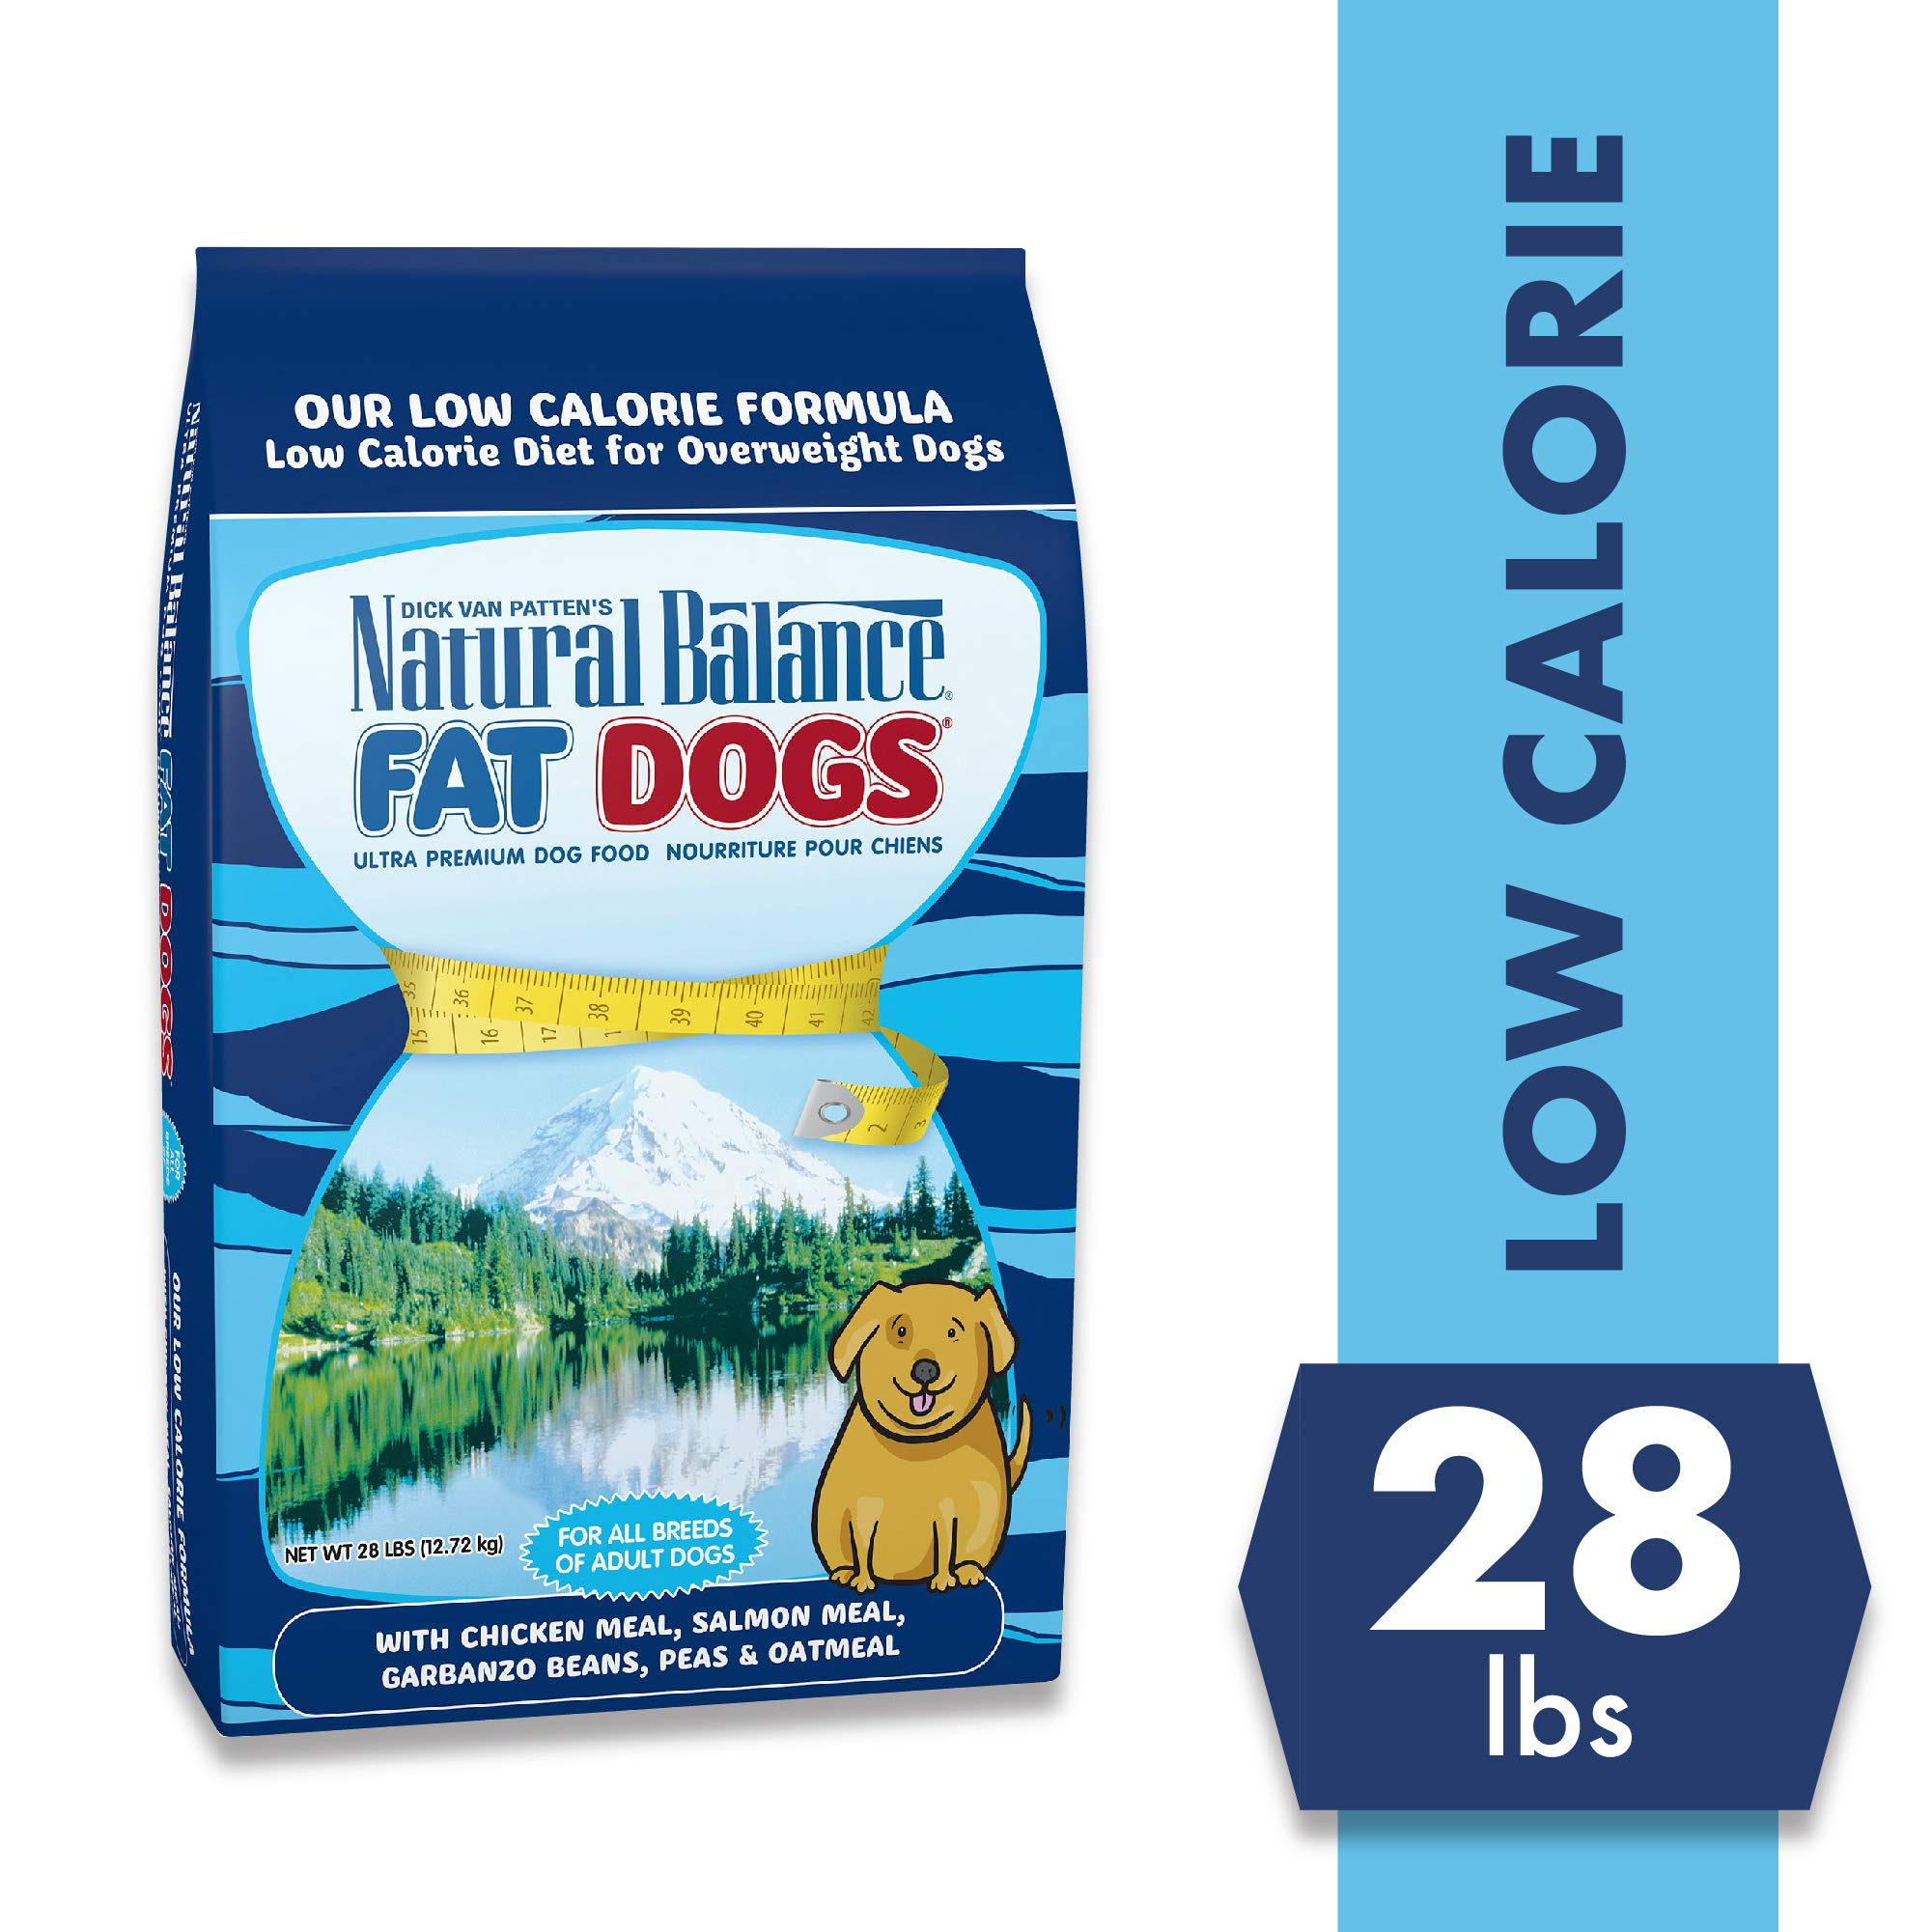 Natual Balance Fat Dogs Low Calorie Adult Dog Food with Chicken Meal, Salmon Meal, Garbonzo Bean, Peas & Oat Groats, 28 Pounds by Natural Balance